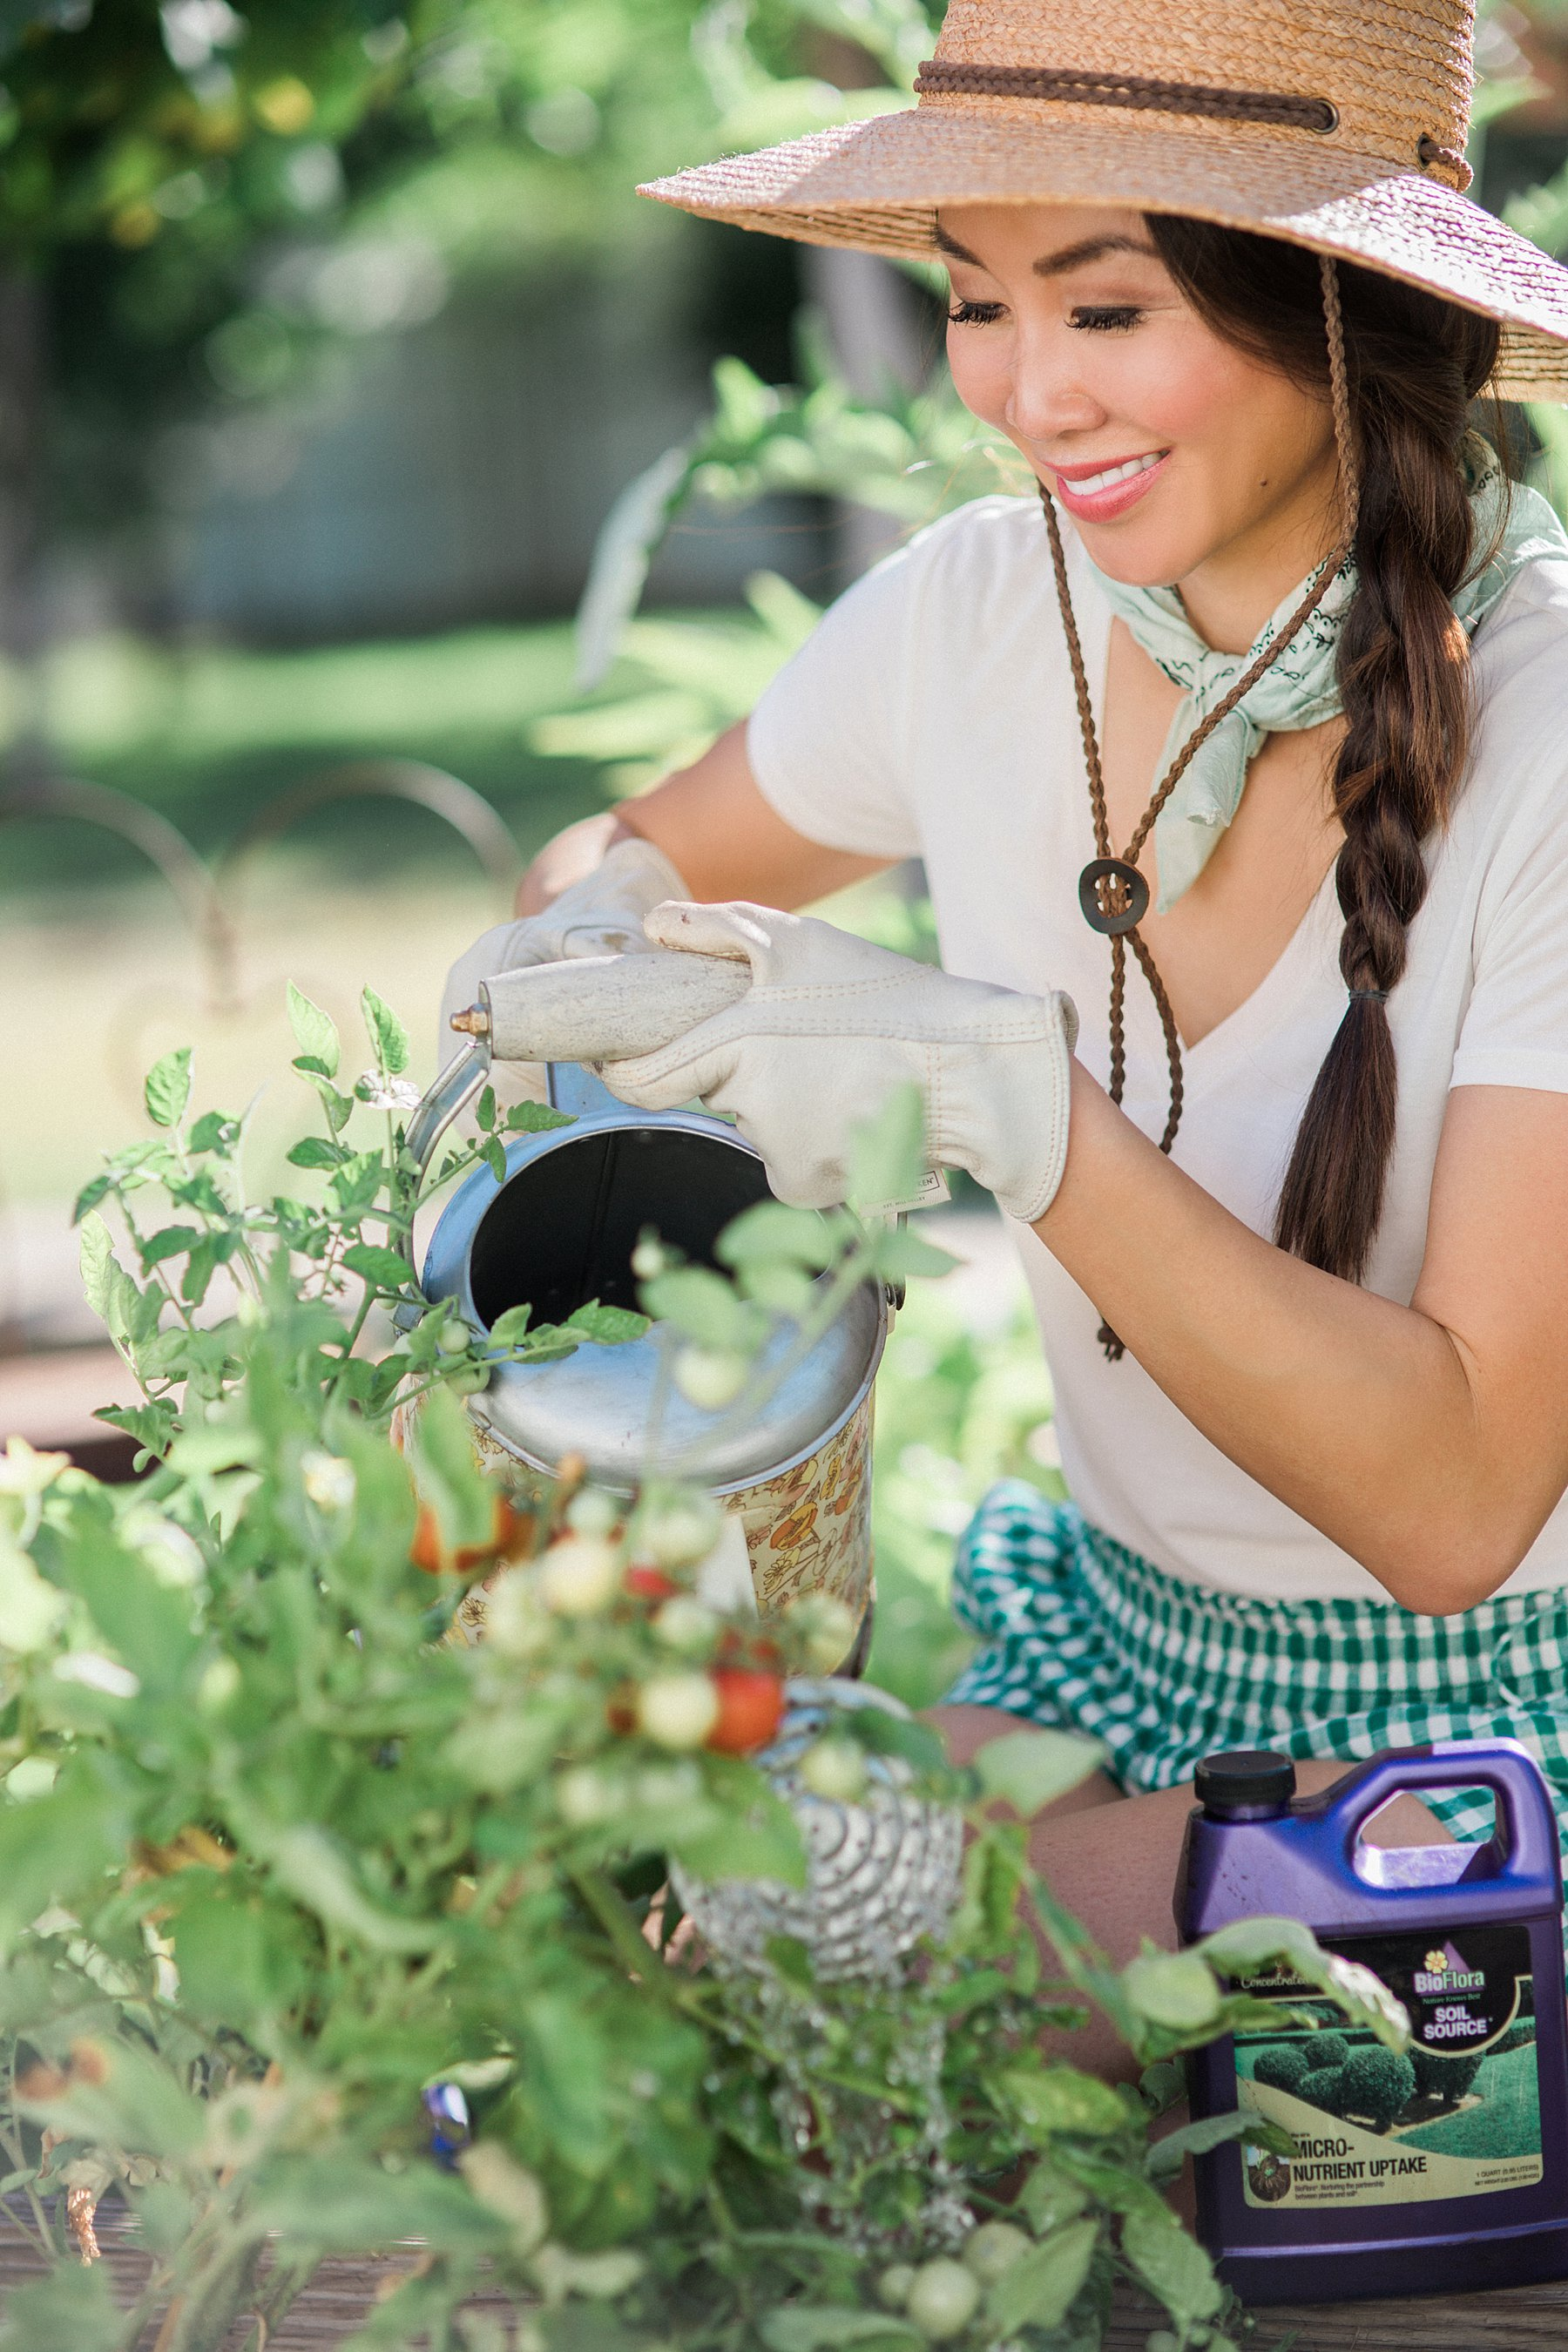 In the backyard garden with lifestyle blogger home and garden lover blogger: With BioFlora organic fertilization for gardens and shrubs and trees a review